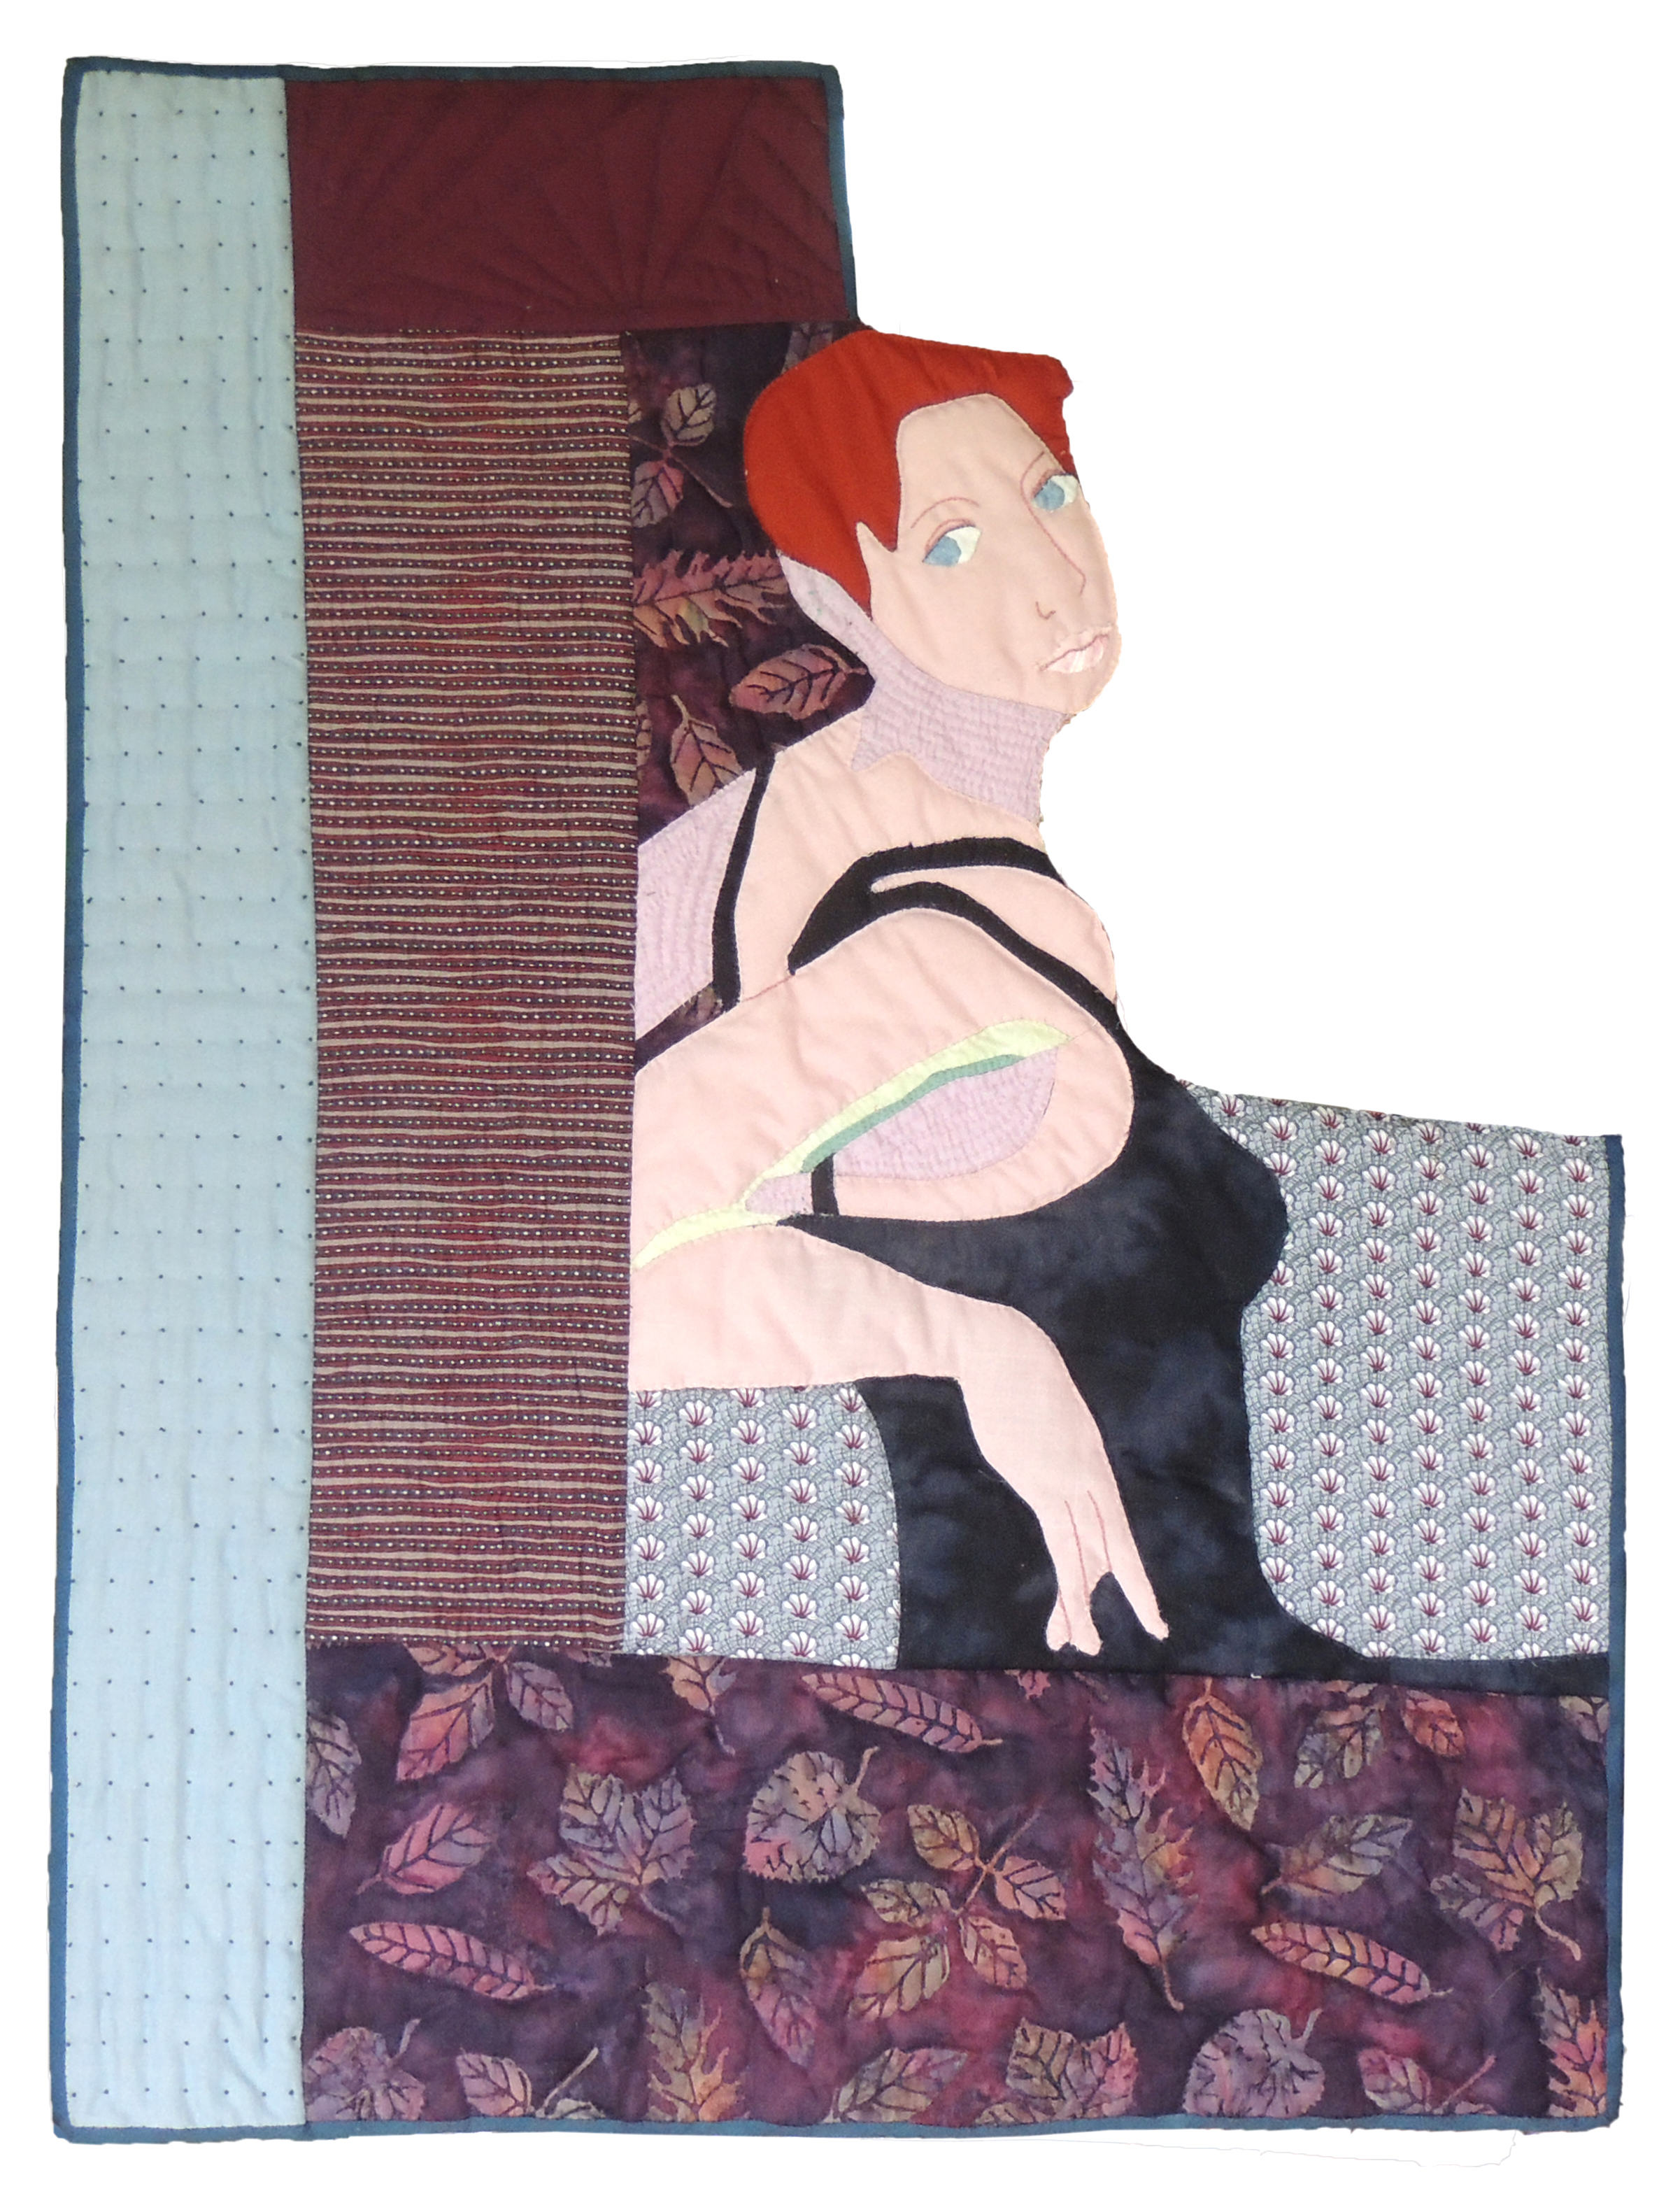 Marianne Rabb Britton | OVER SHOULDER | Fabric & Embroidery | 29 x 22"